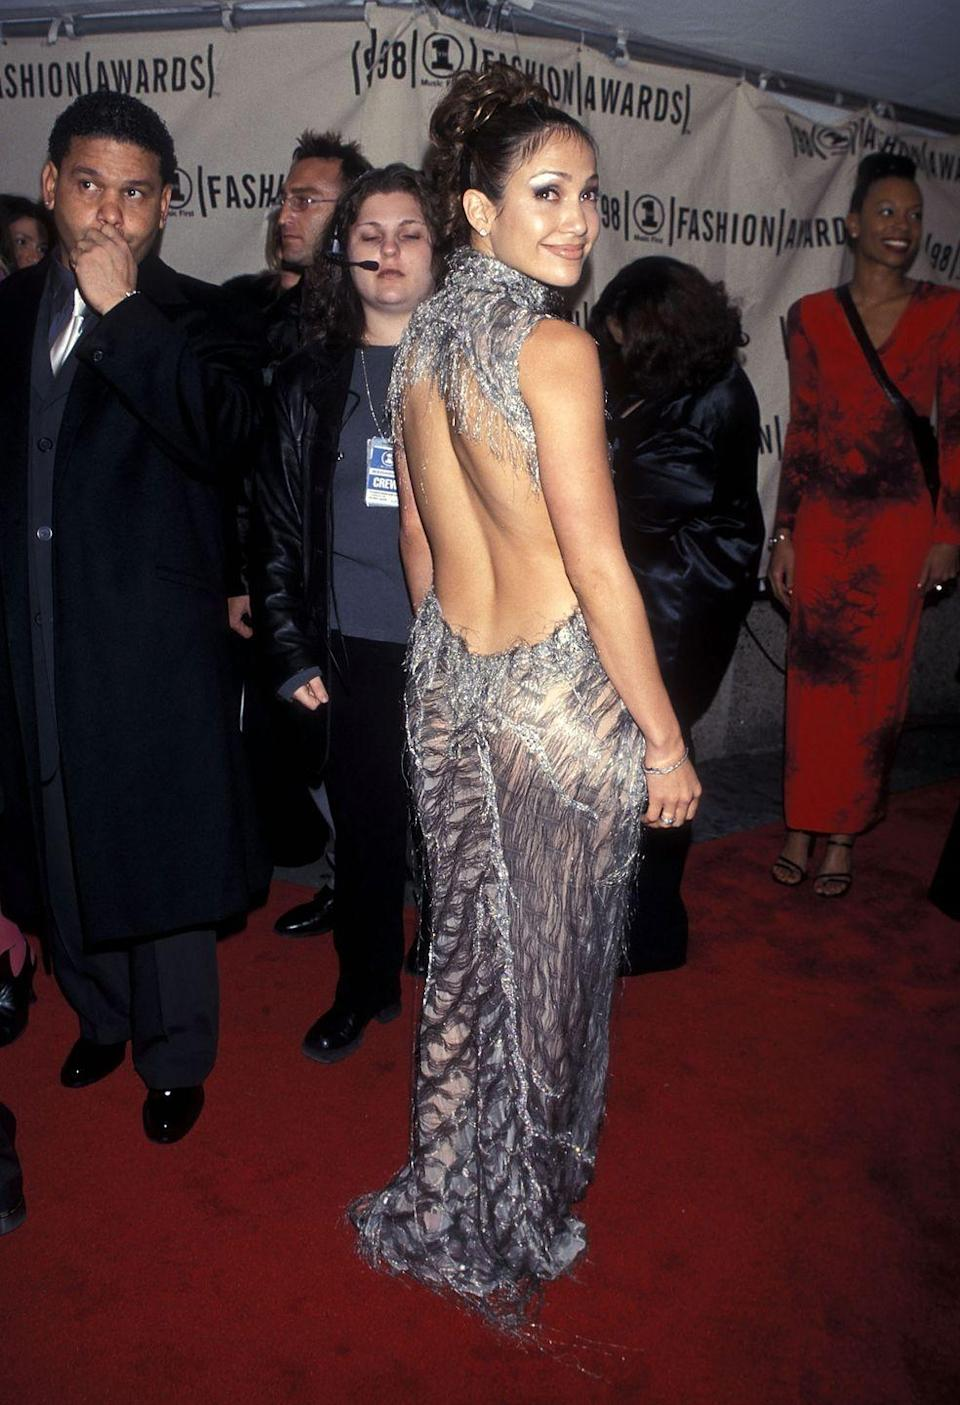 <p><strong>When: </strong>October 1998</p><p><strong>Where: </strong>The VH1 Fashion Awards</p><p><strong>Wearing: </strong>Versace</p>